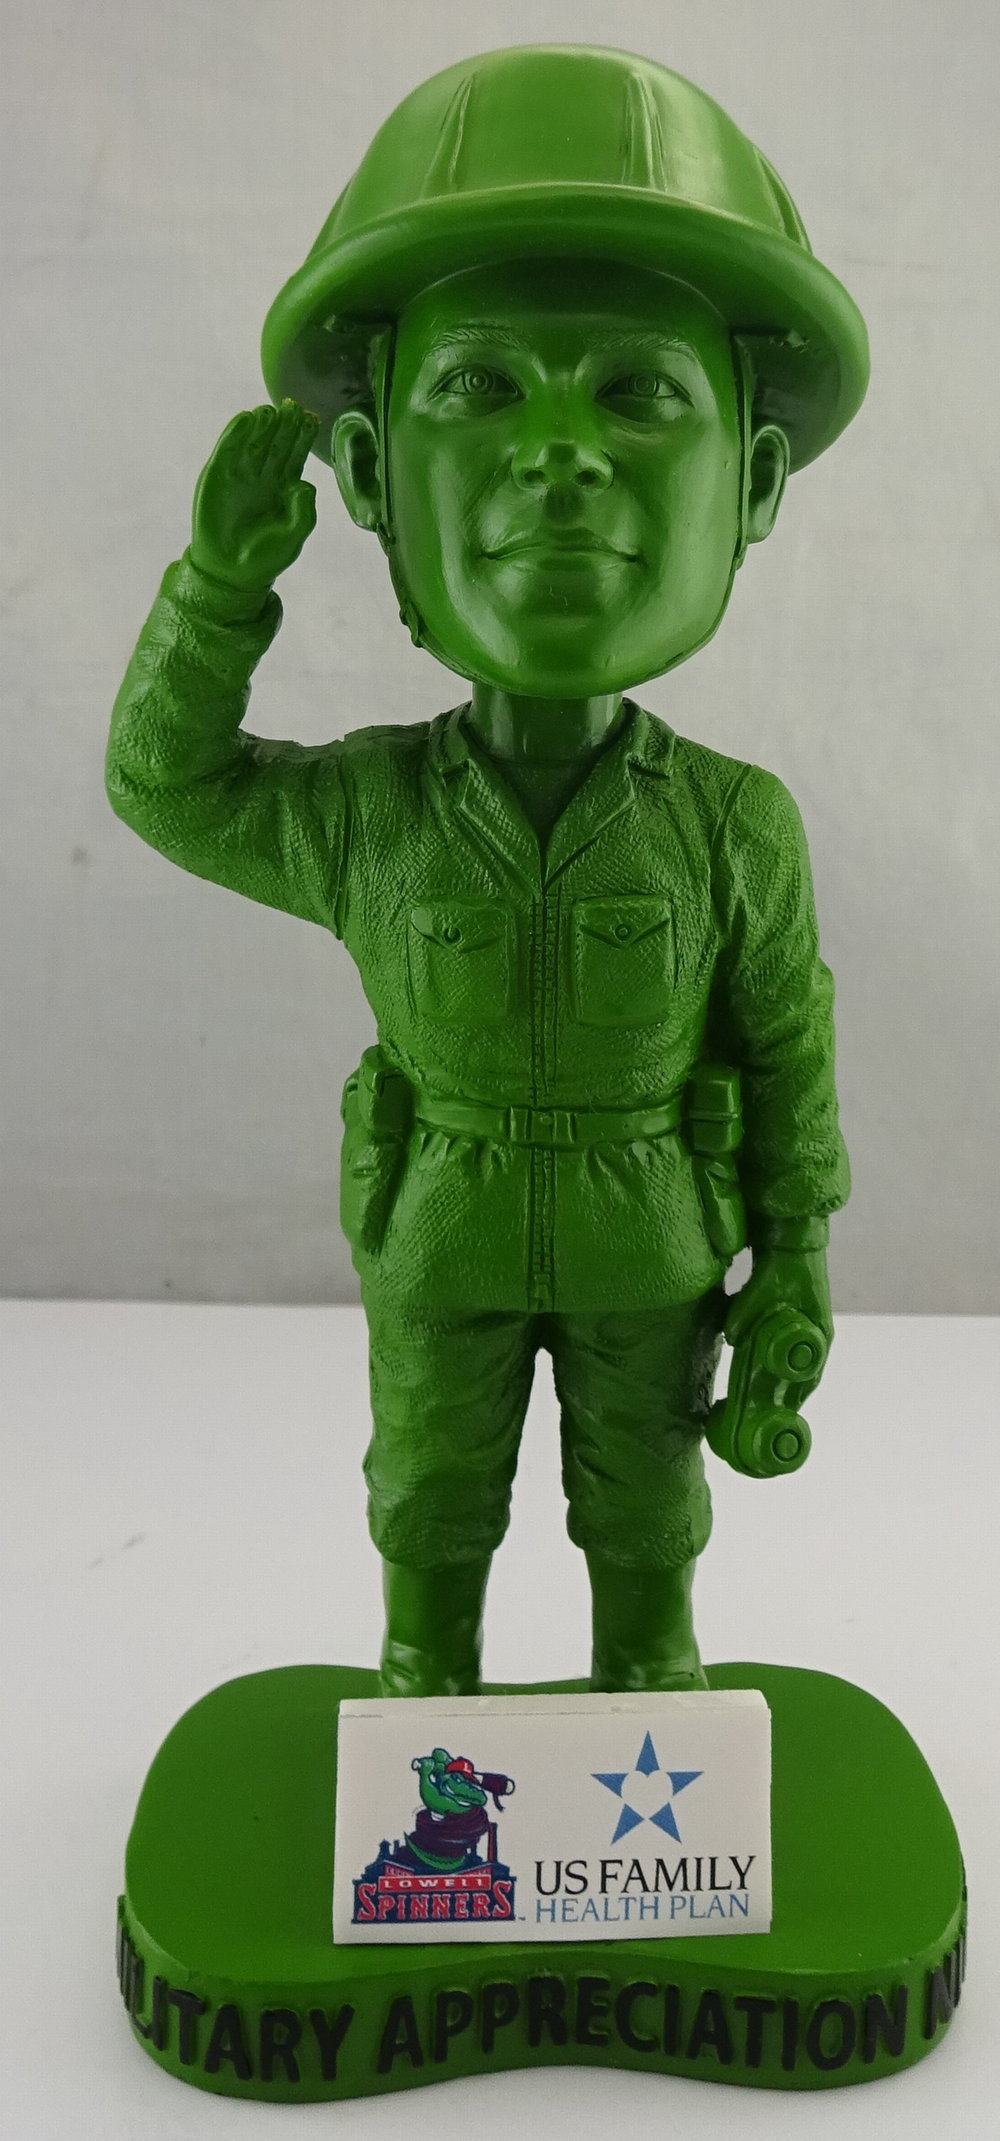 Lowell Spinners - Little Green Army Man 113560, 7in Bobblehead (2).jpg